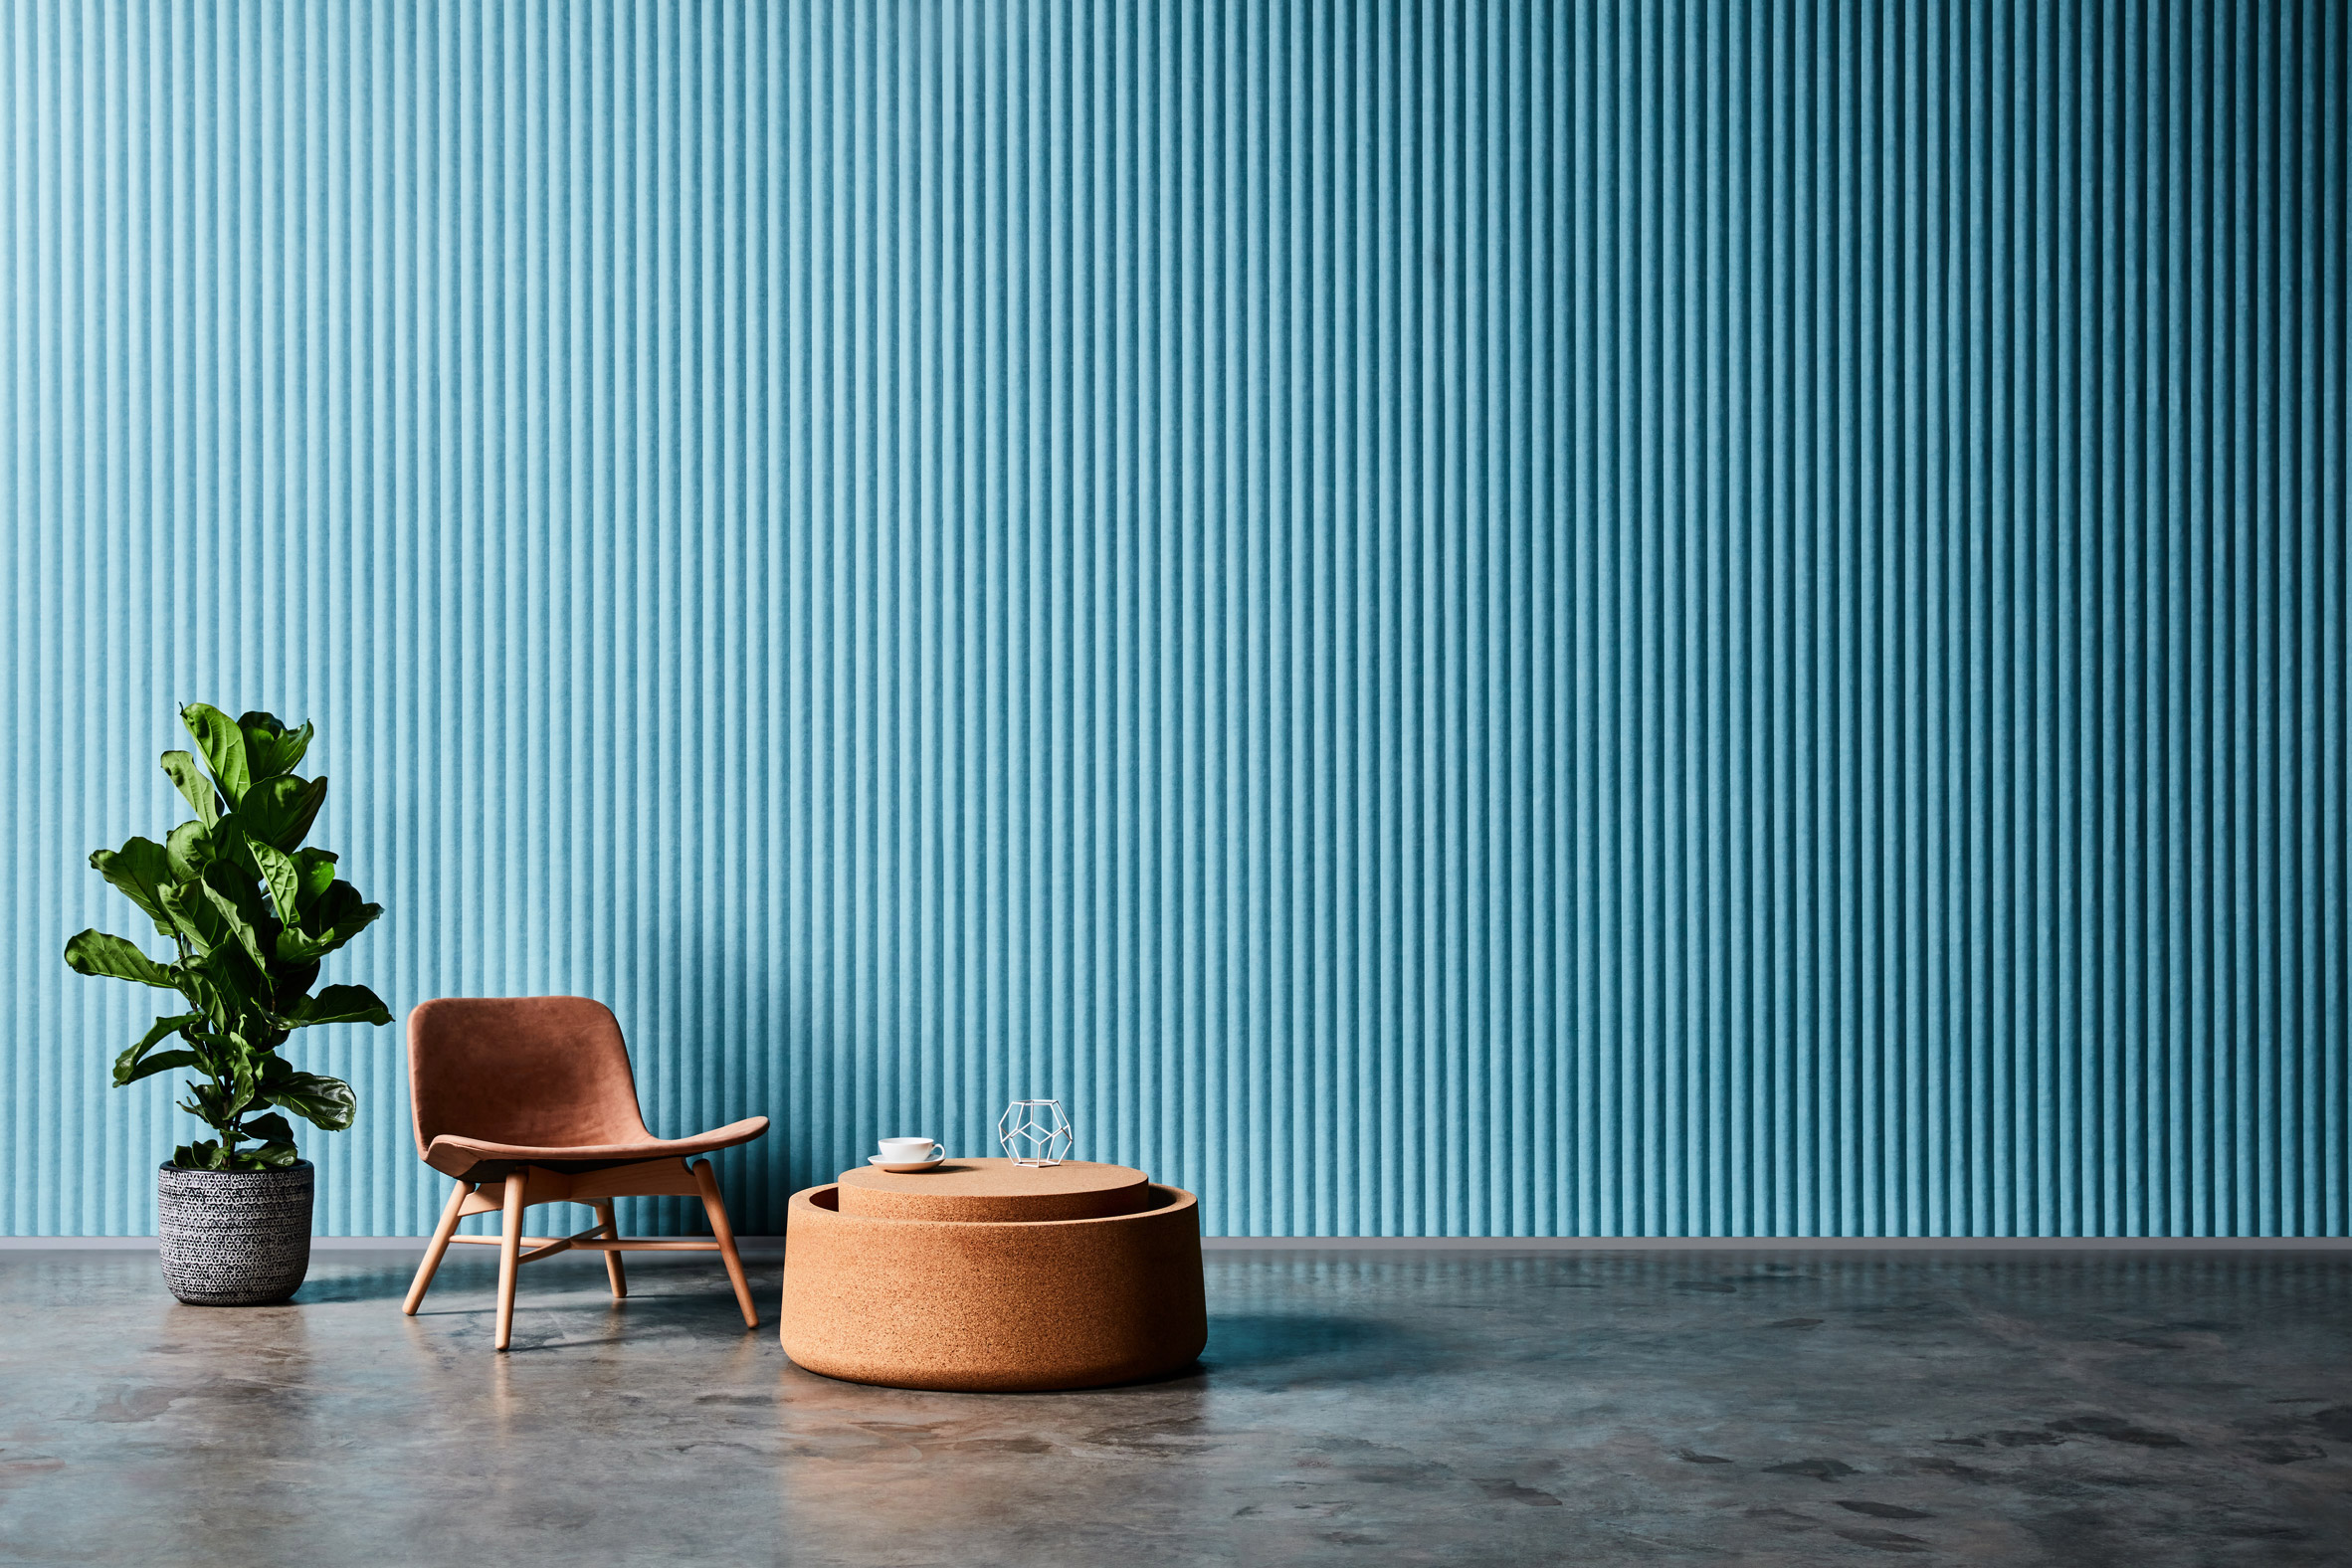 Zen wall panel by Woven Image